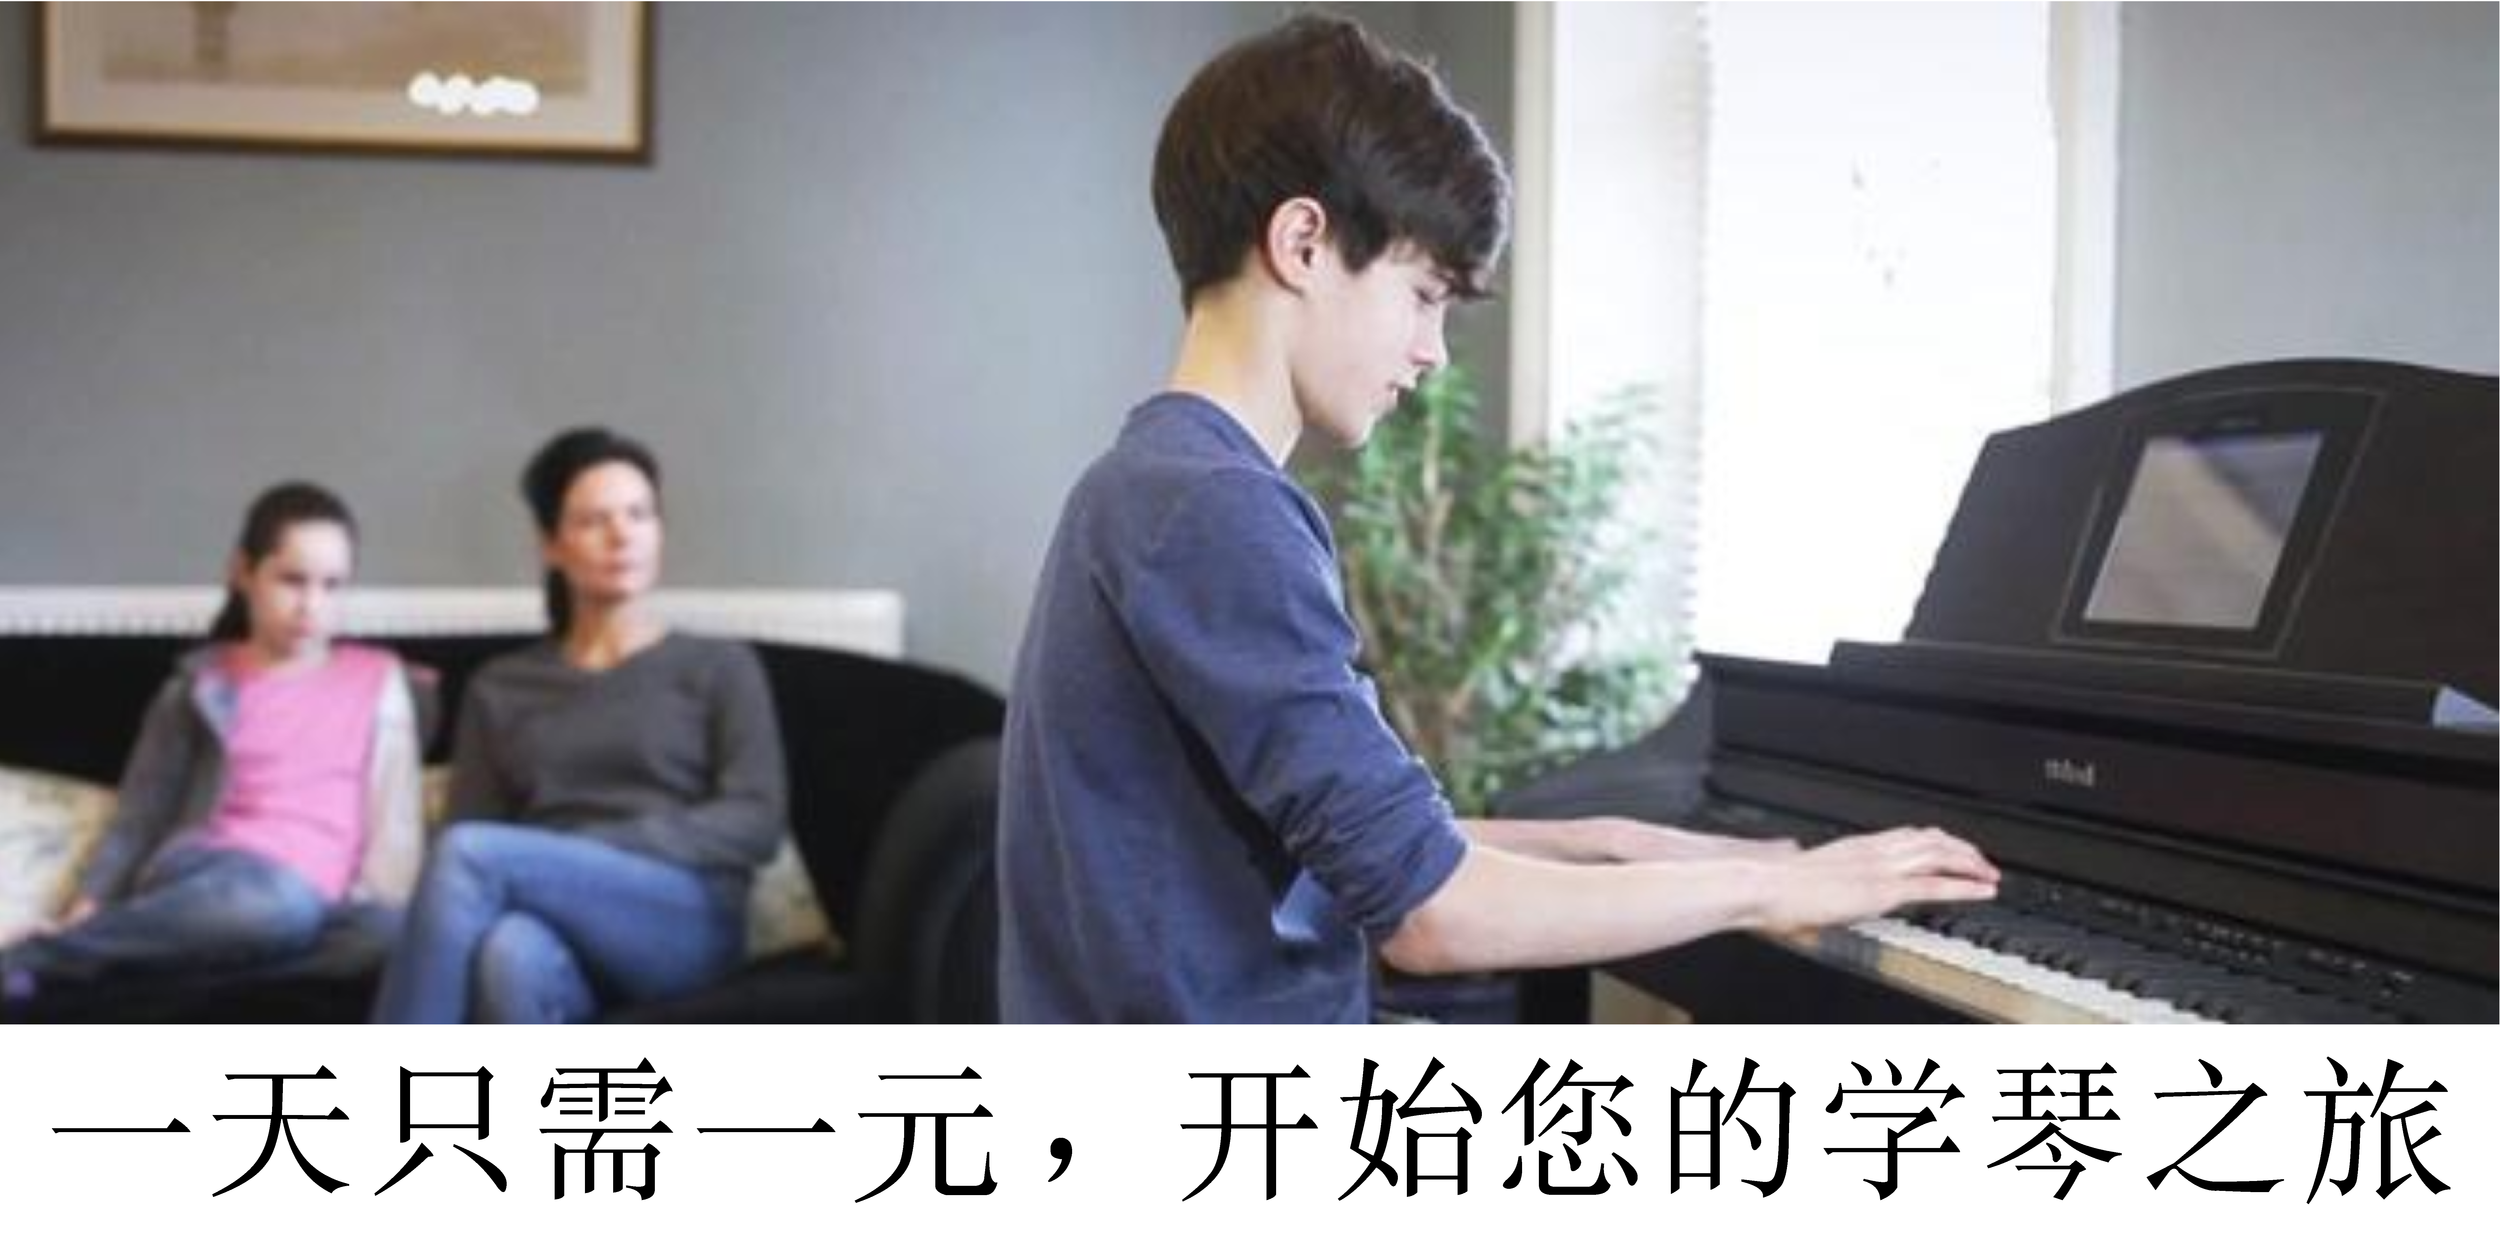 Chinese Piano Renal-01.png